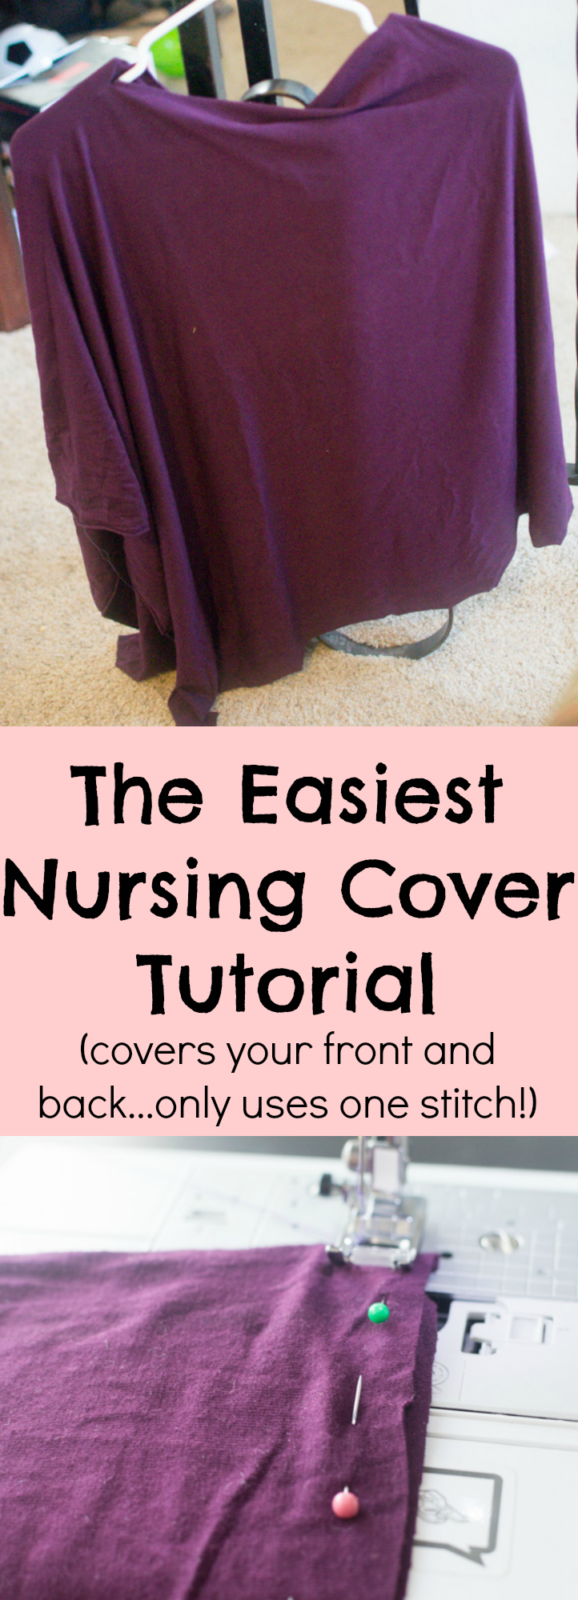 nursing cover / diy nursing cover / easy nursing cover / easy diy nursing cover / breastfeeding cover / poncho nursing cover